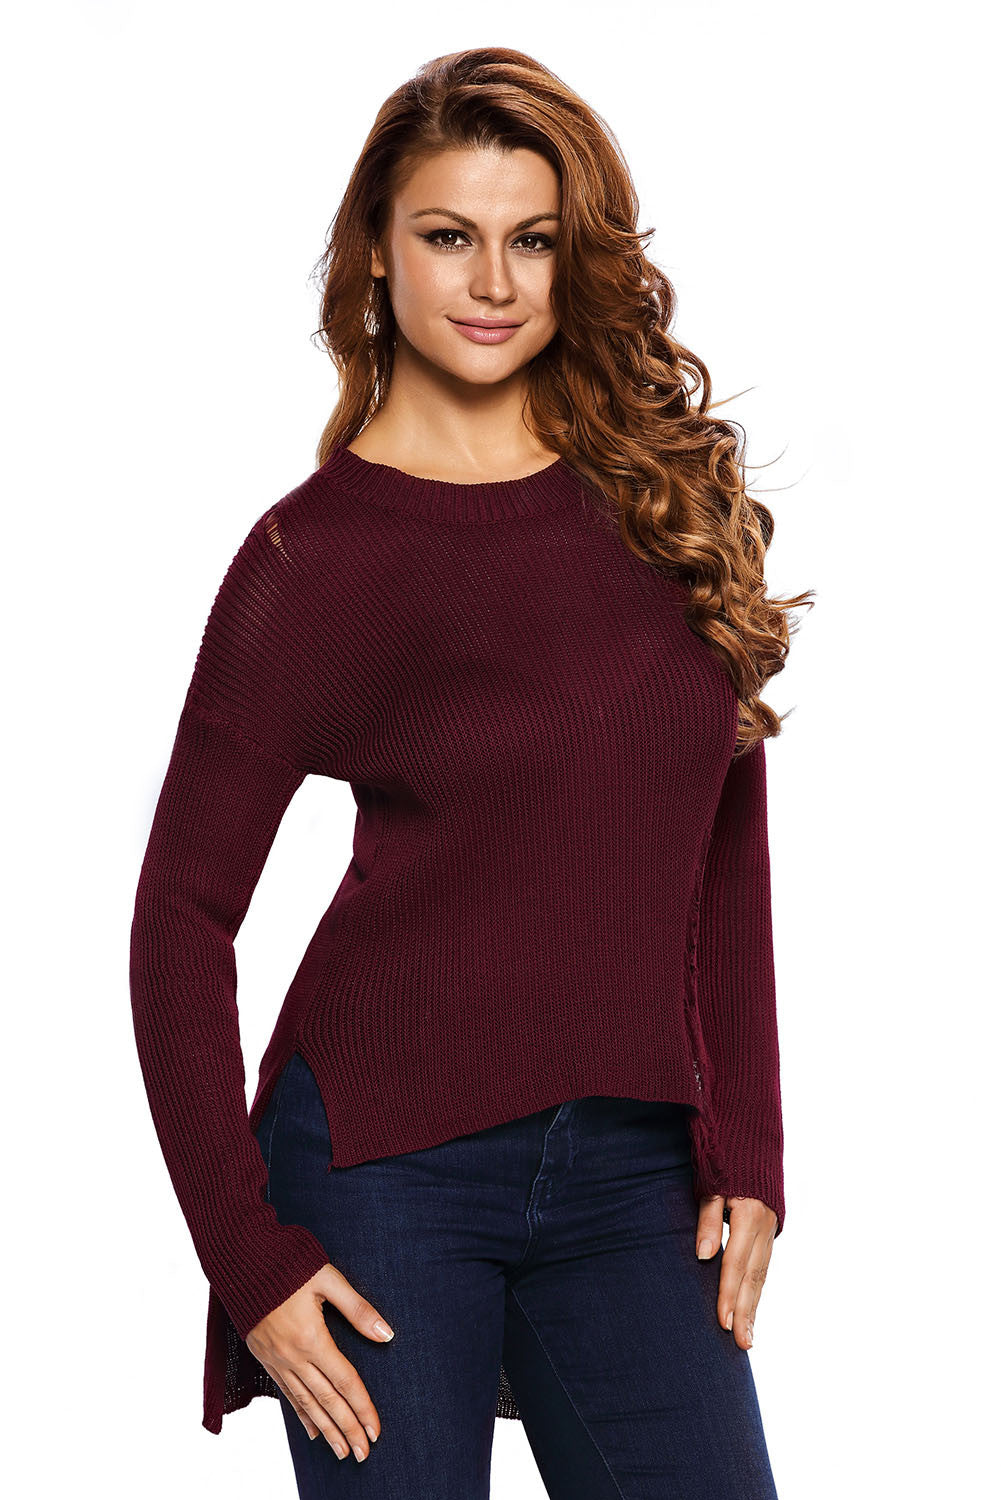 Chicloth Burgundy Sheer Knit Tangled Long Tail Sweater-Sweater-Chicloth